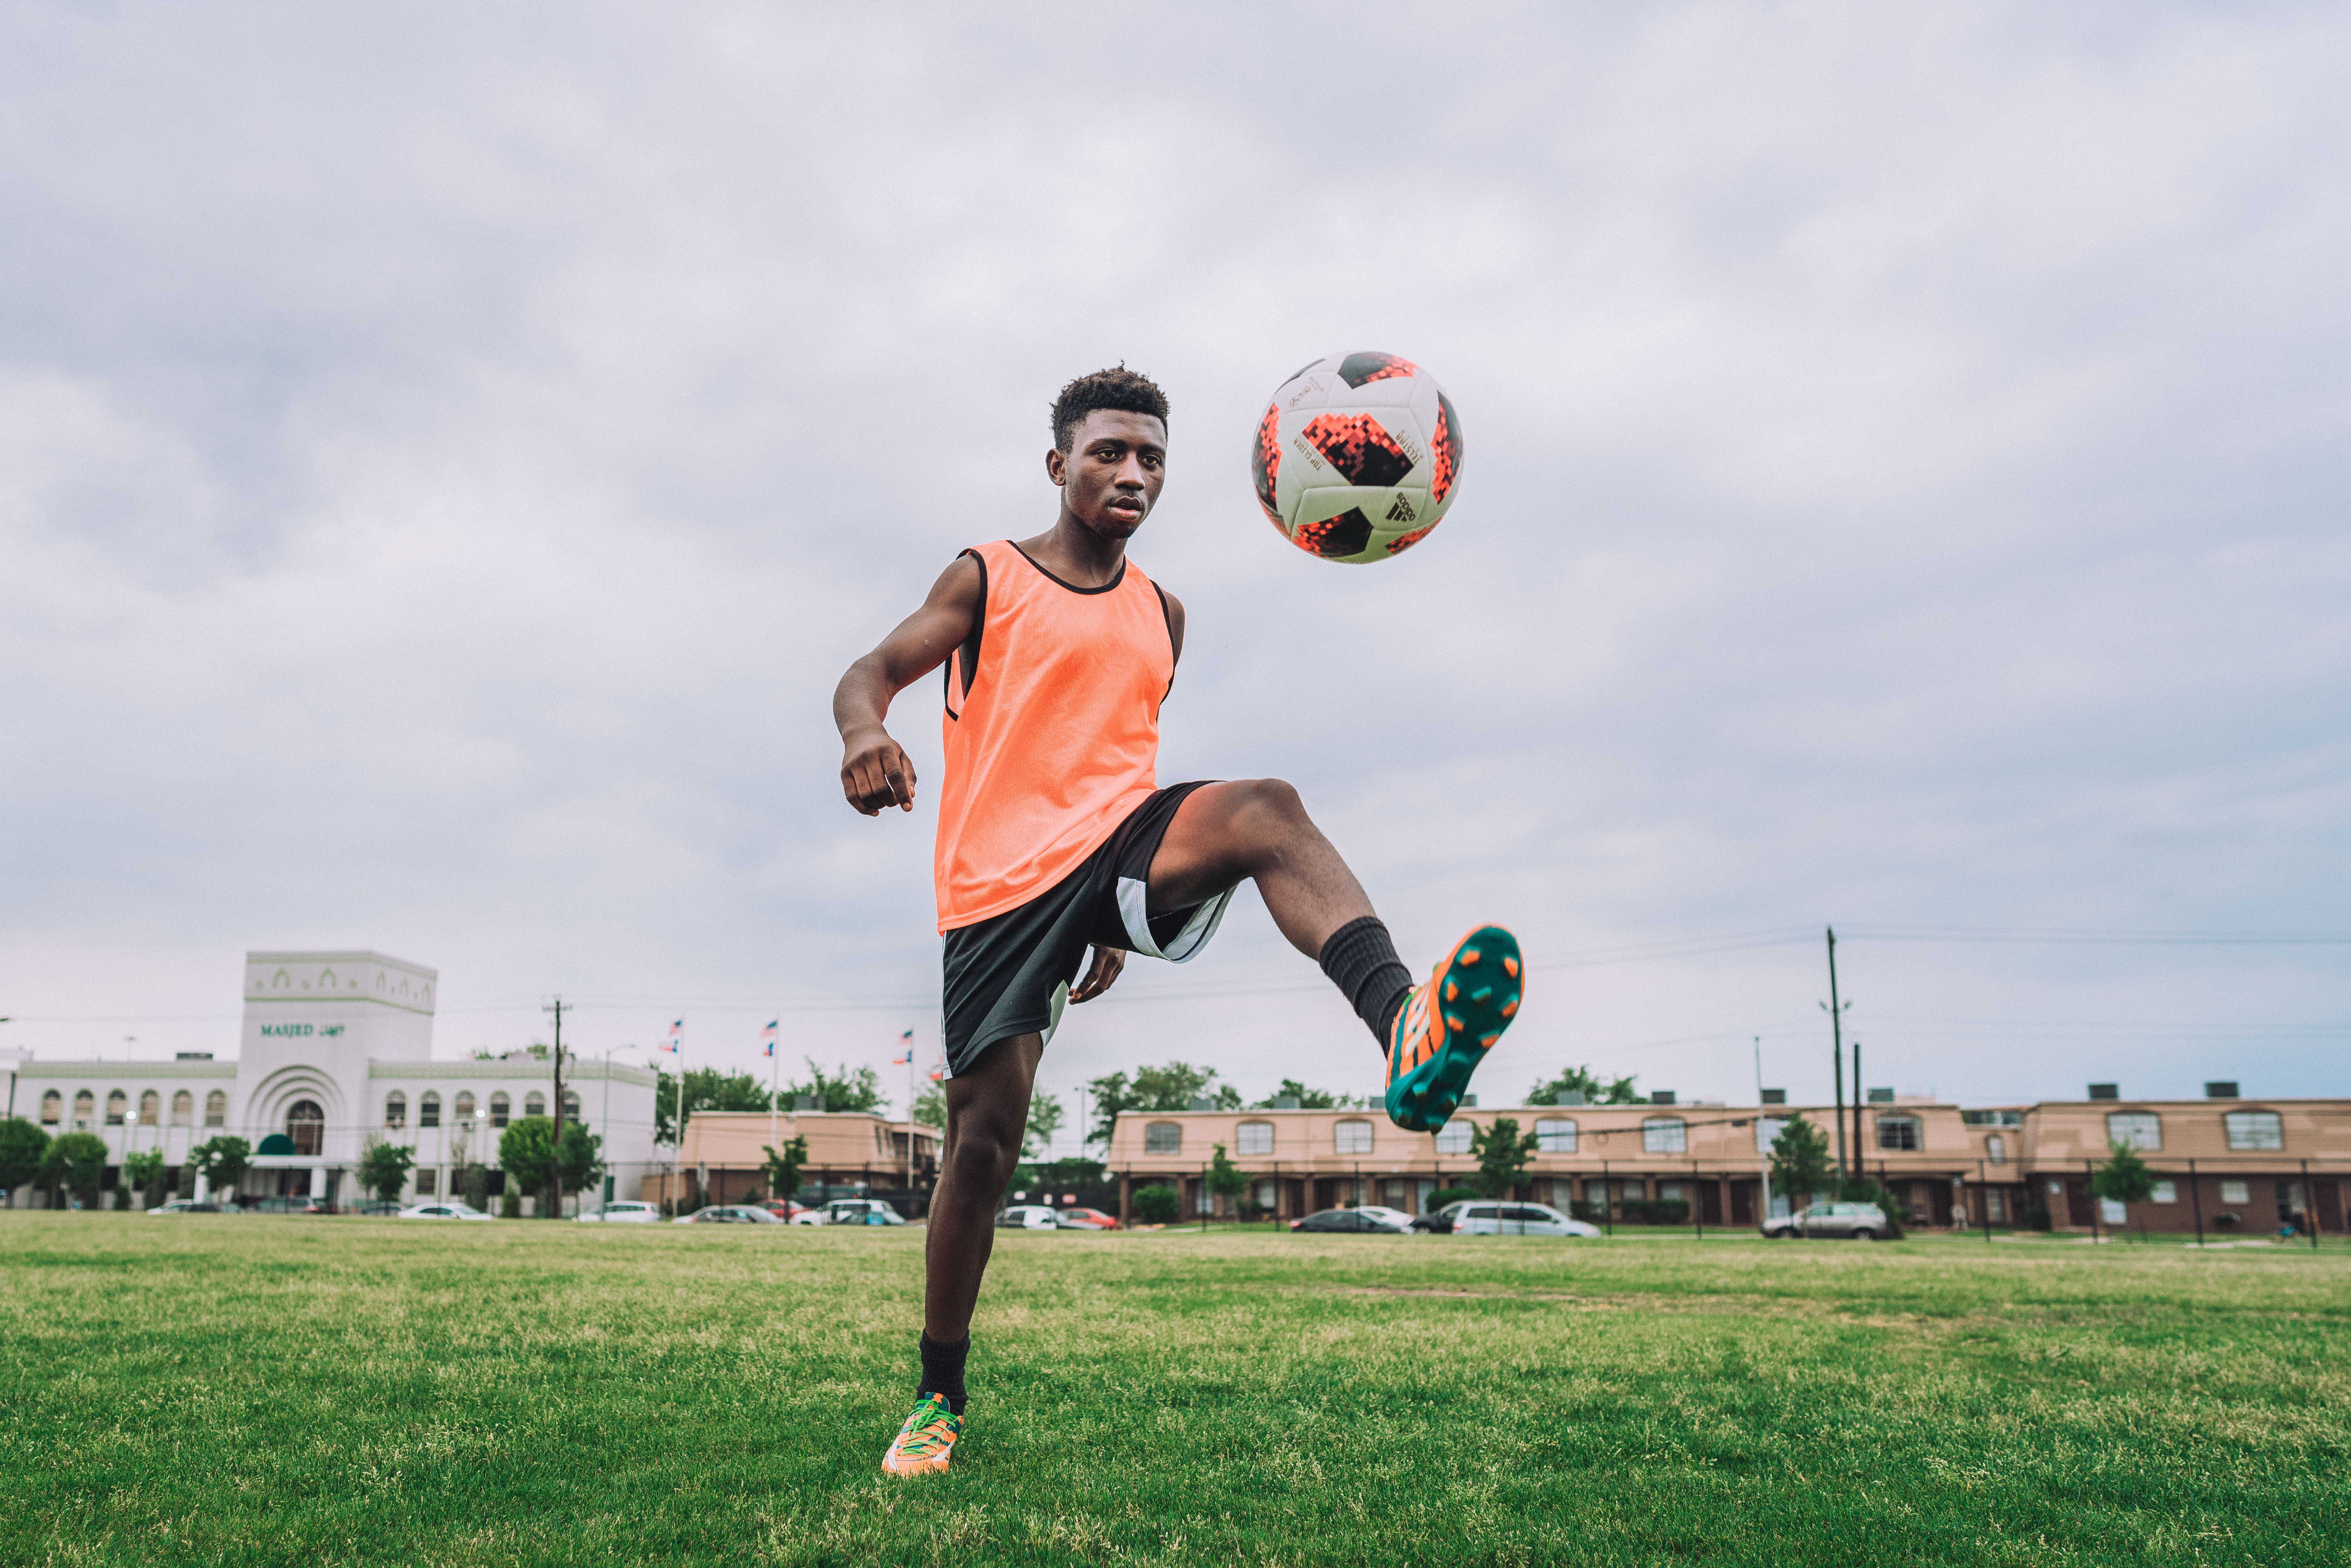 A refugee soccer player in an orange tank top juggling a soccer ball on an empty field in Houston.